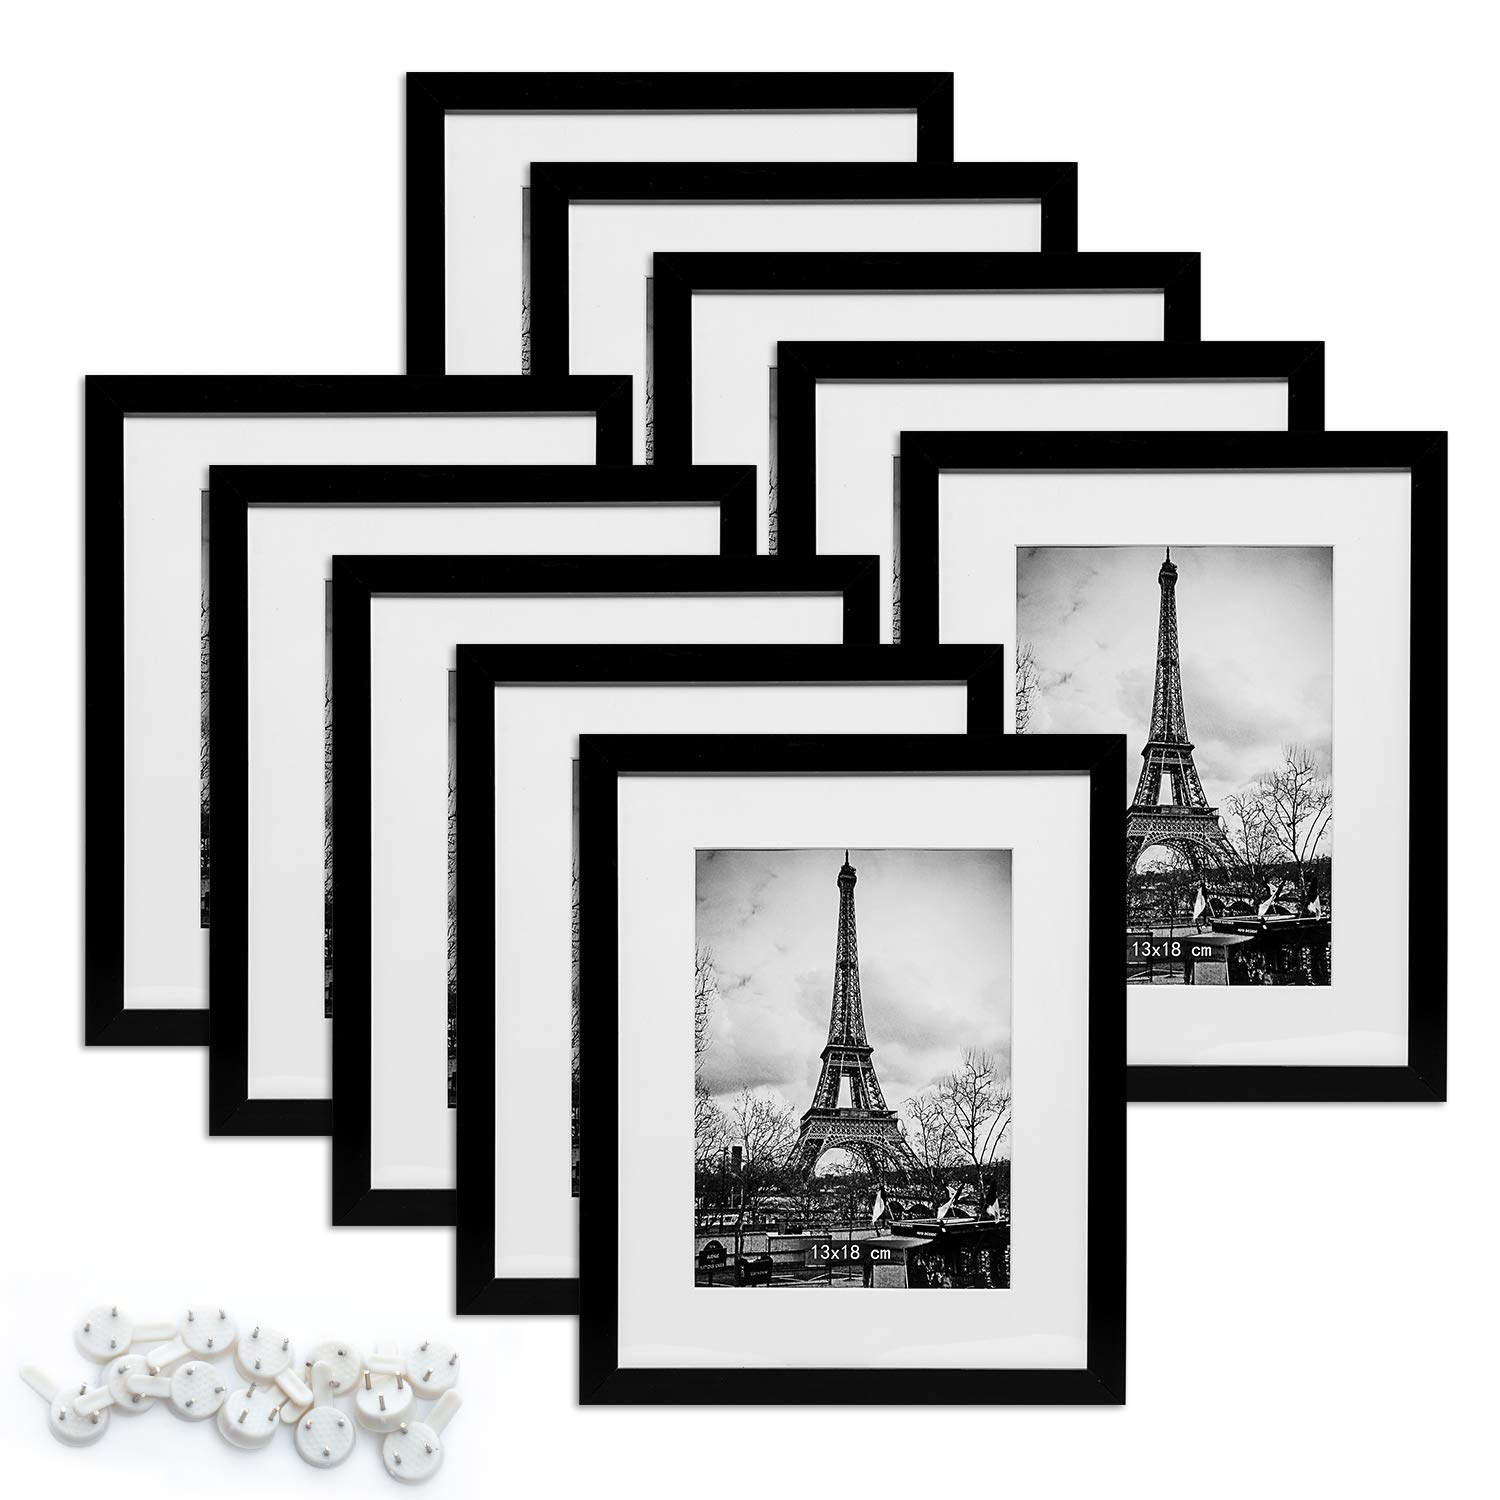 upsimples 8x10 Picture Frame with Mat Set of 10,Black Picture Frames for Wall or Tabletop Display,Gallery Wall Frame Collage